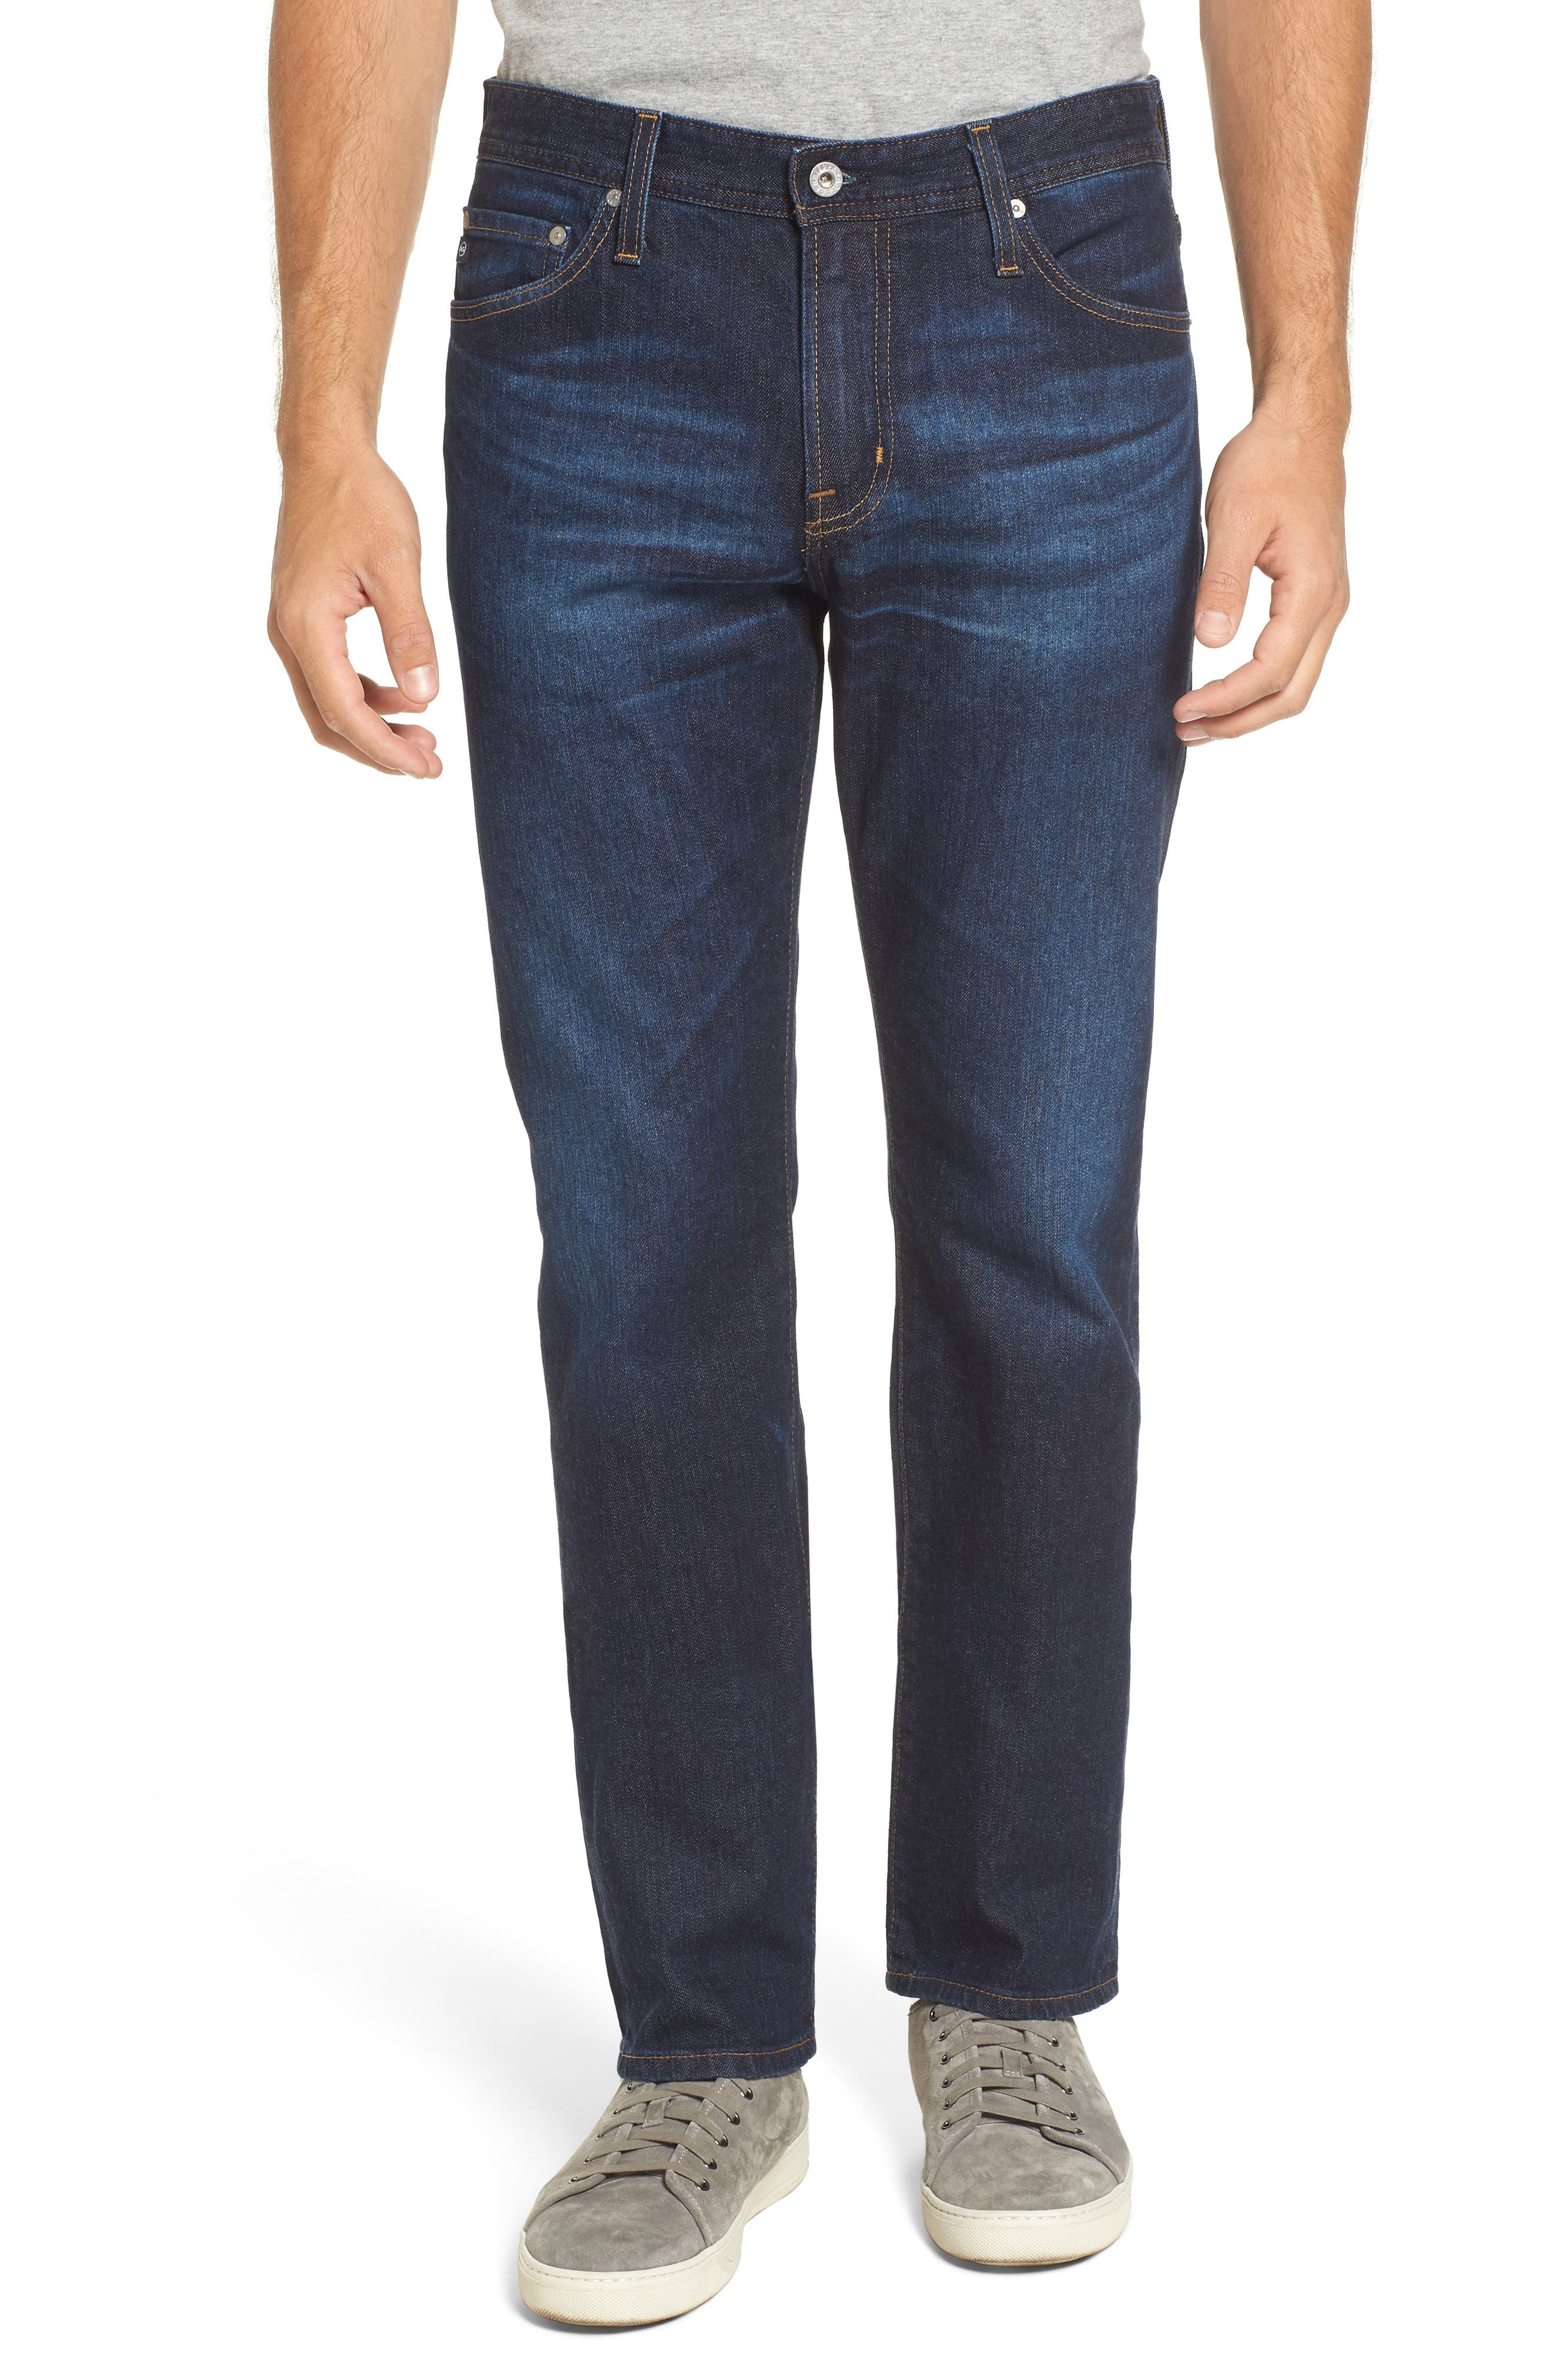 Mens jeans design legends jeans - 7 For All Mankind Austyn Relaxed Straight Leg Jeans Los Angeles Dark